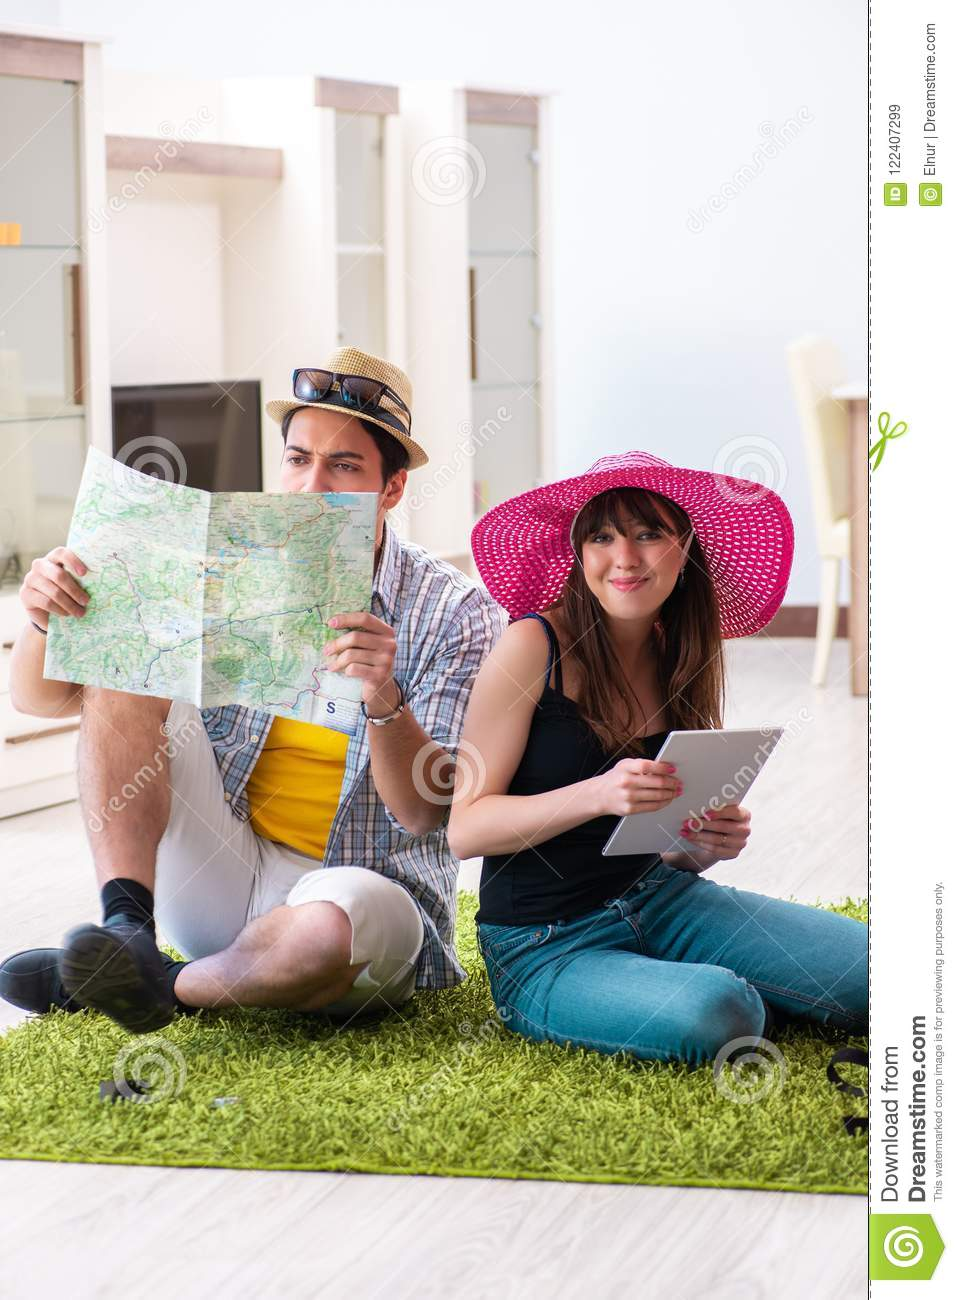 The Young Pair Planning Their Honeymoon Camping Trip Stock